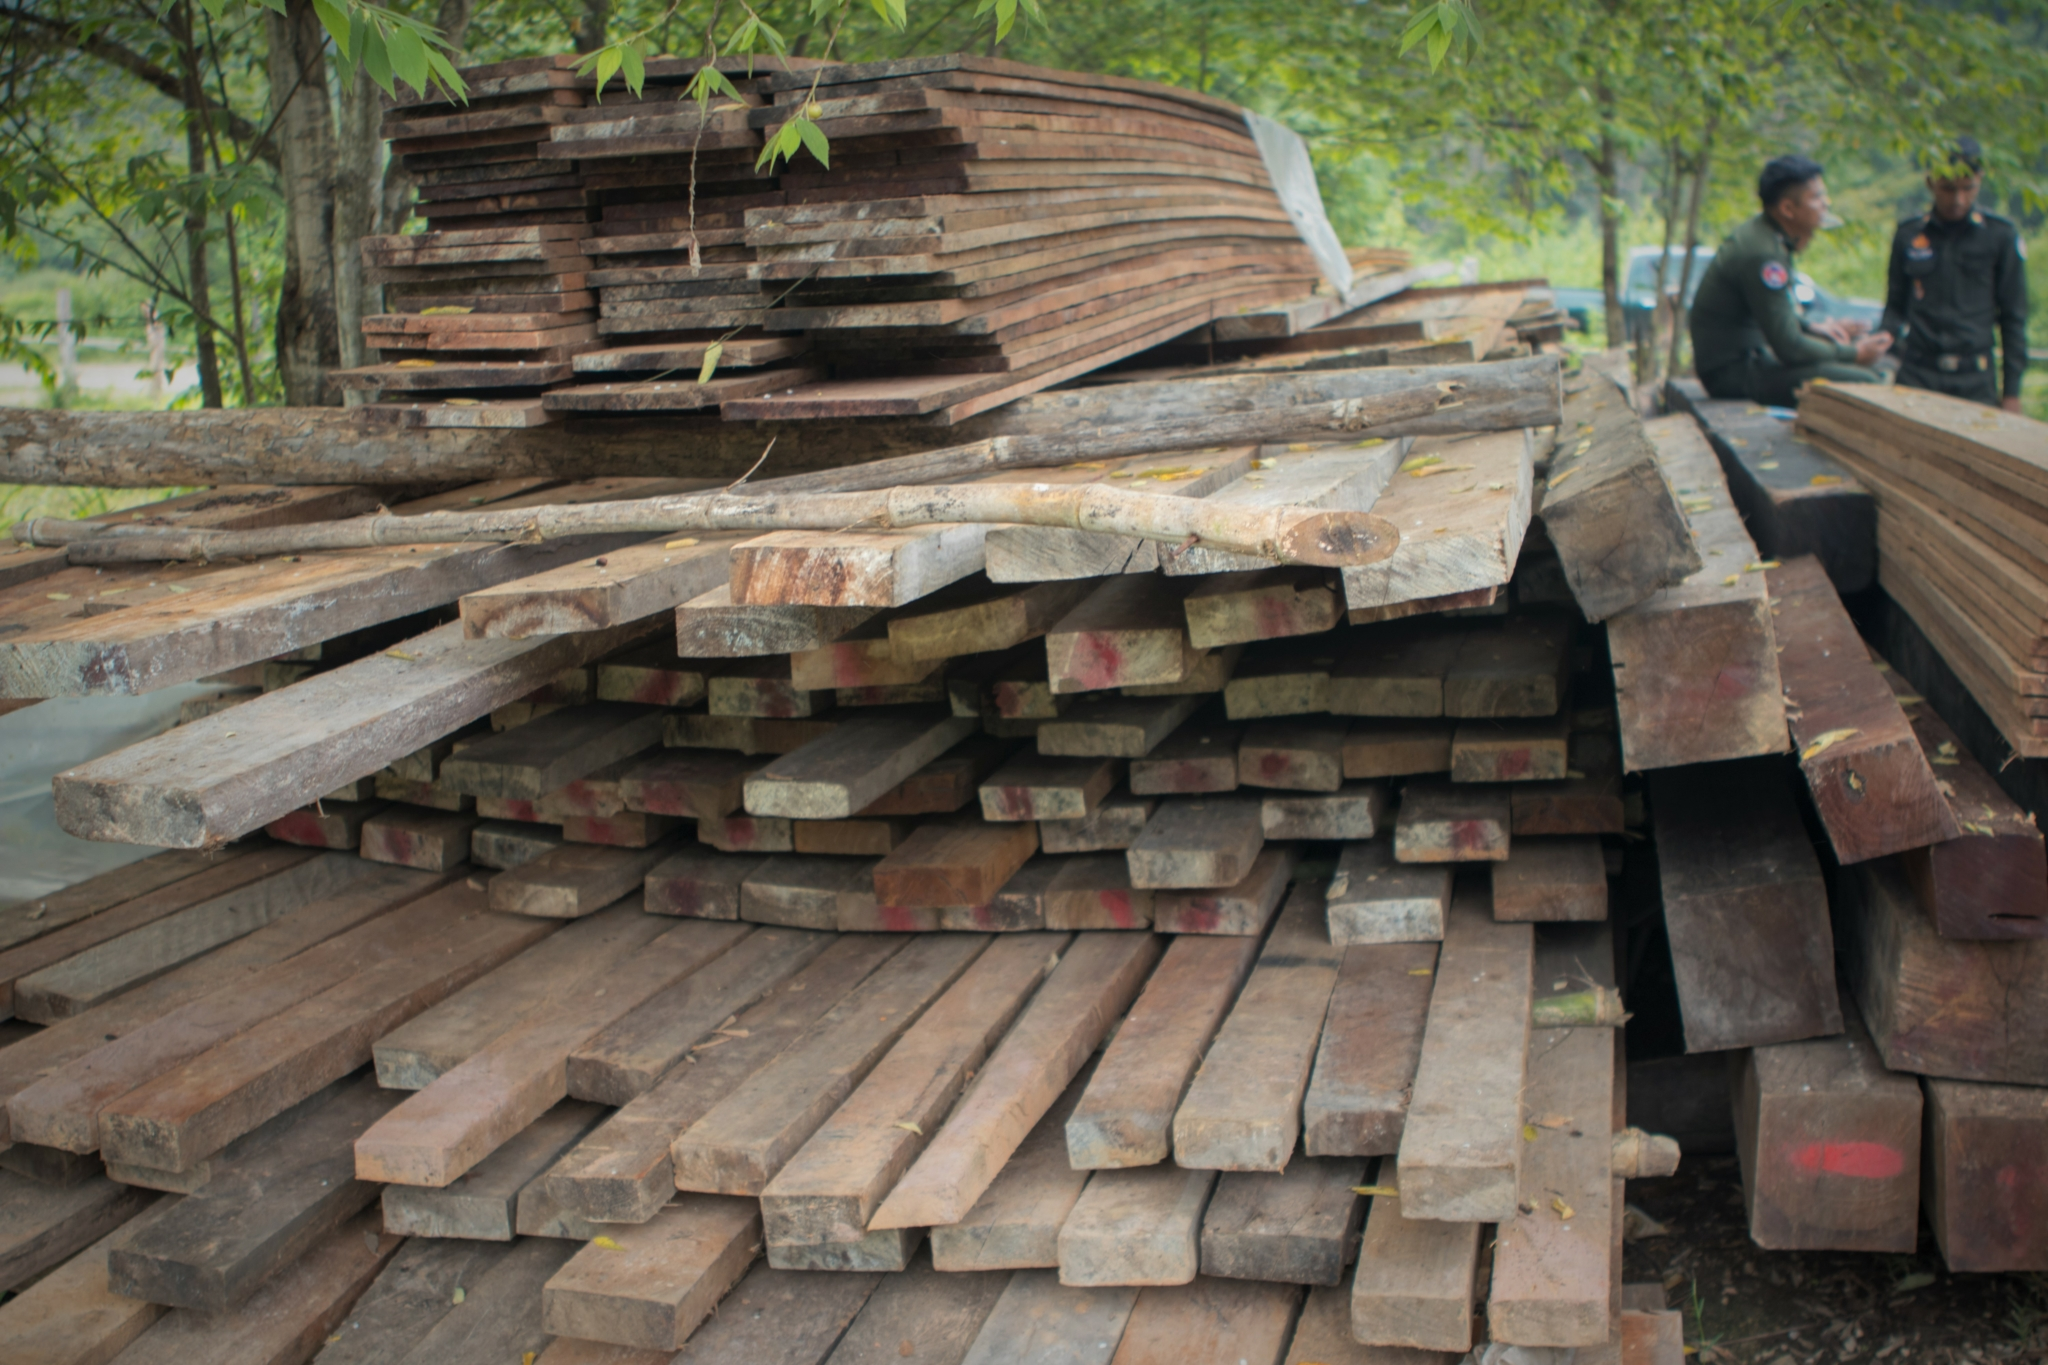 Construction timber stock